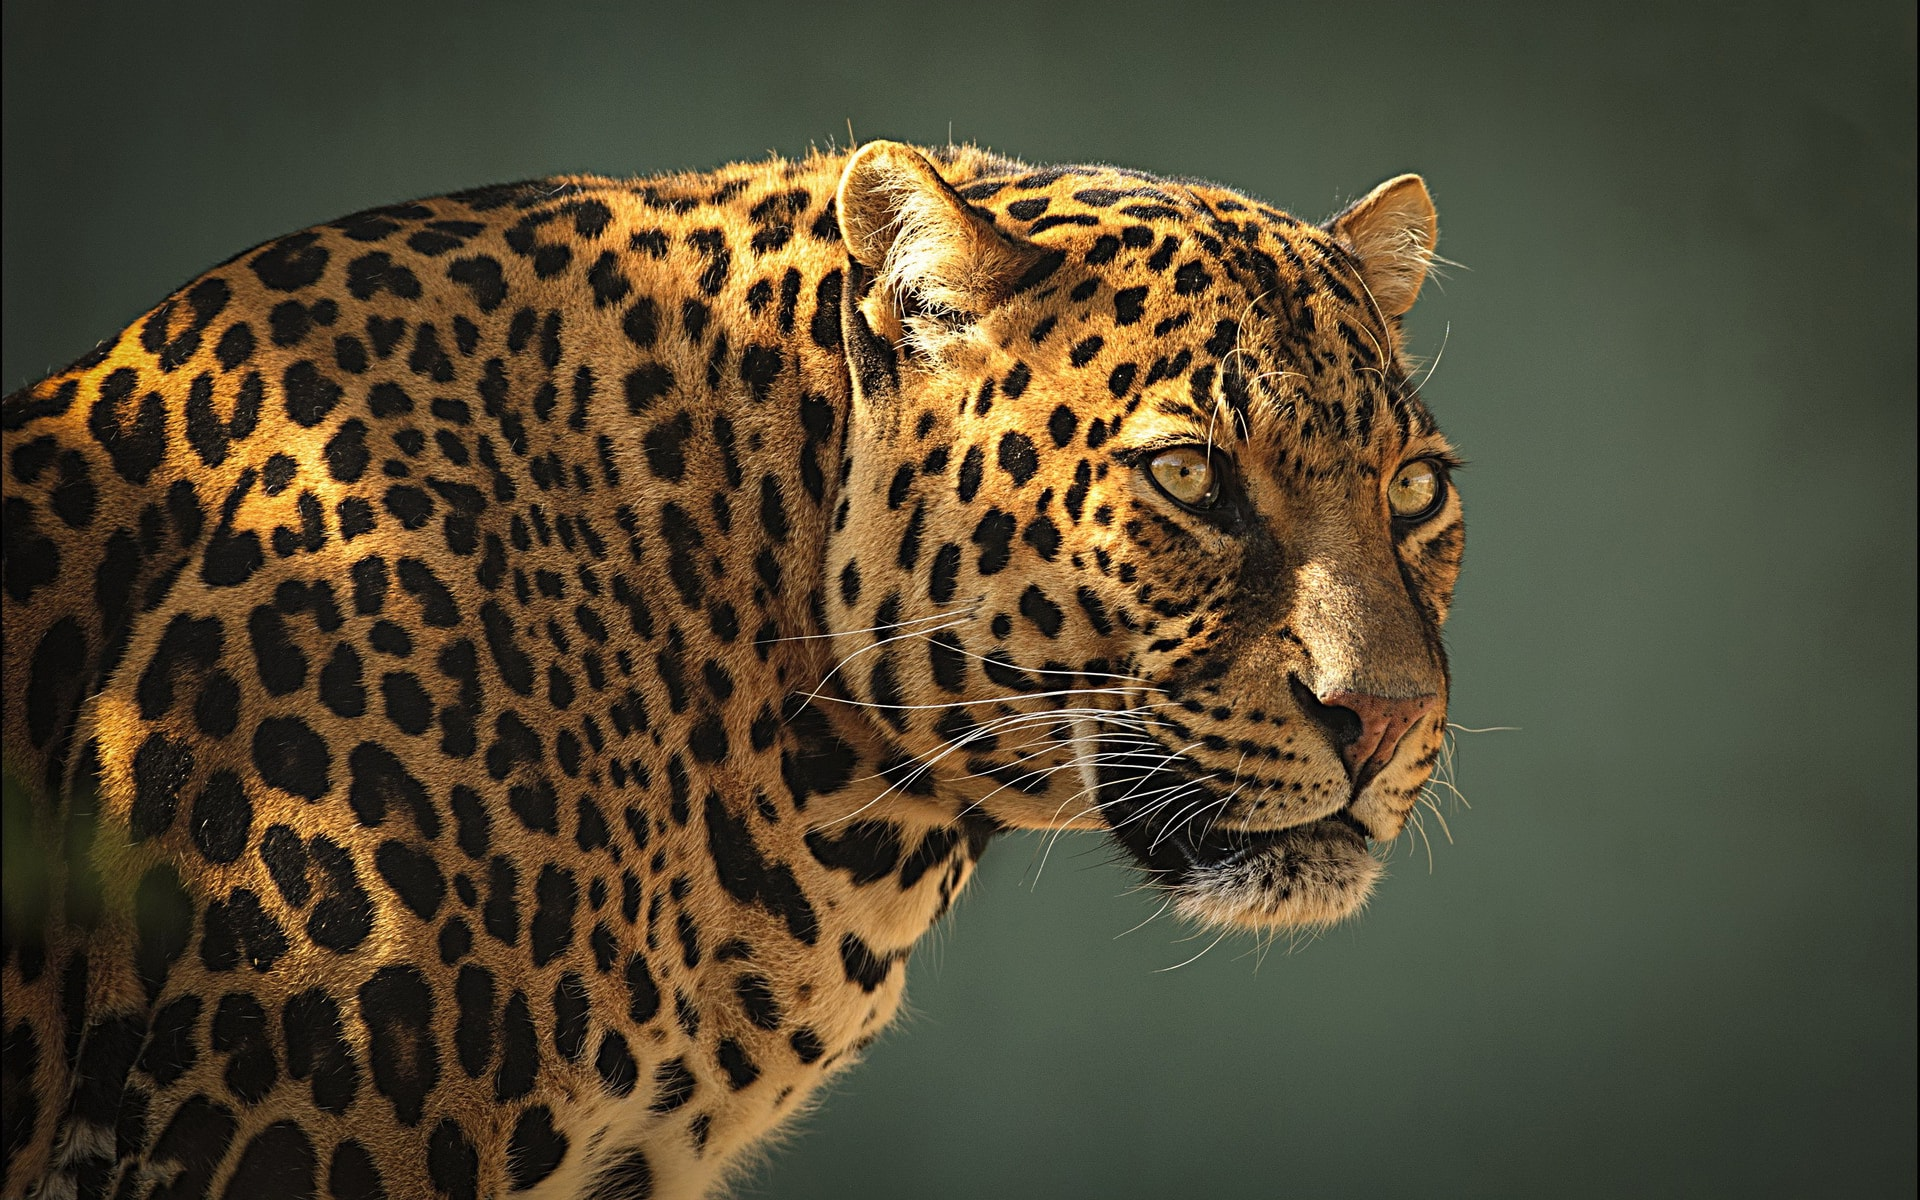 Leopard full hd wallpapers